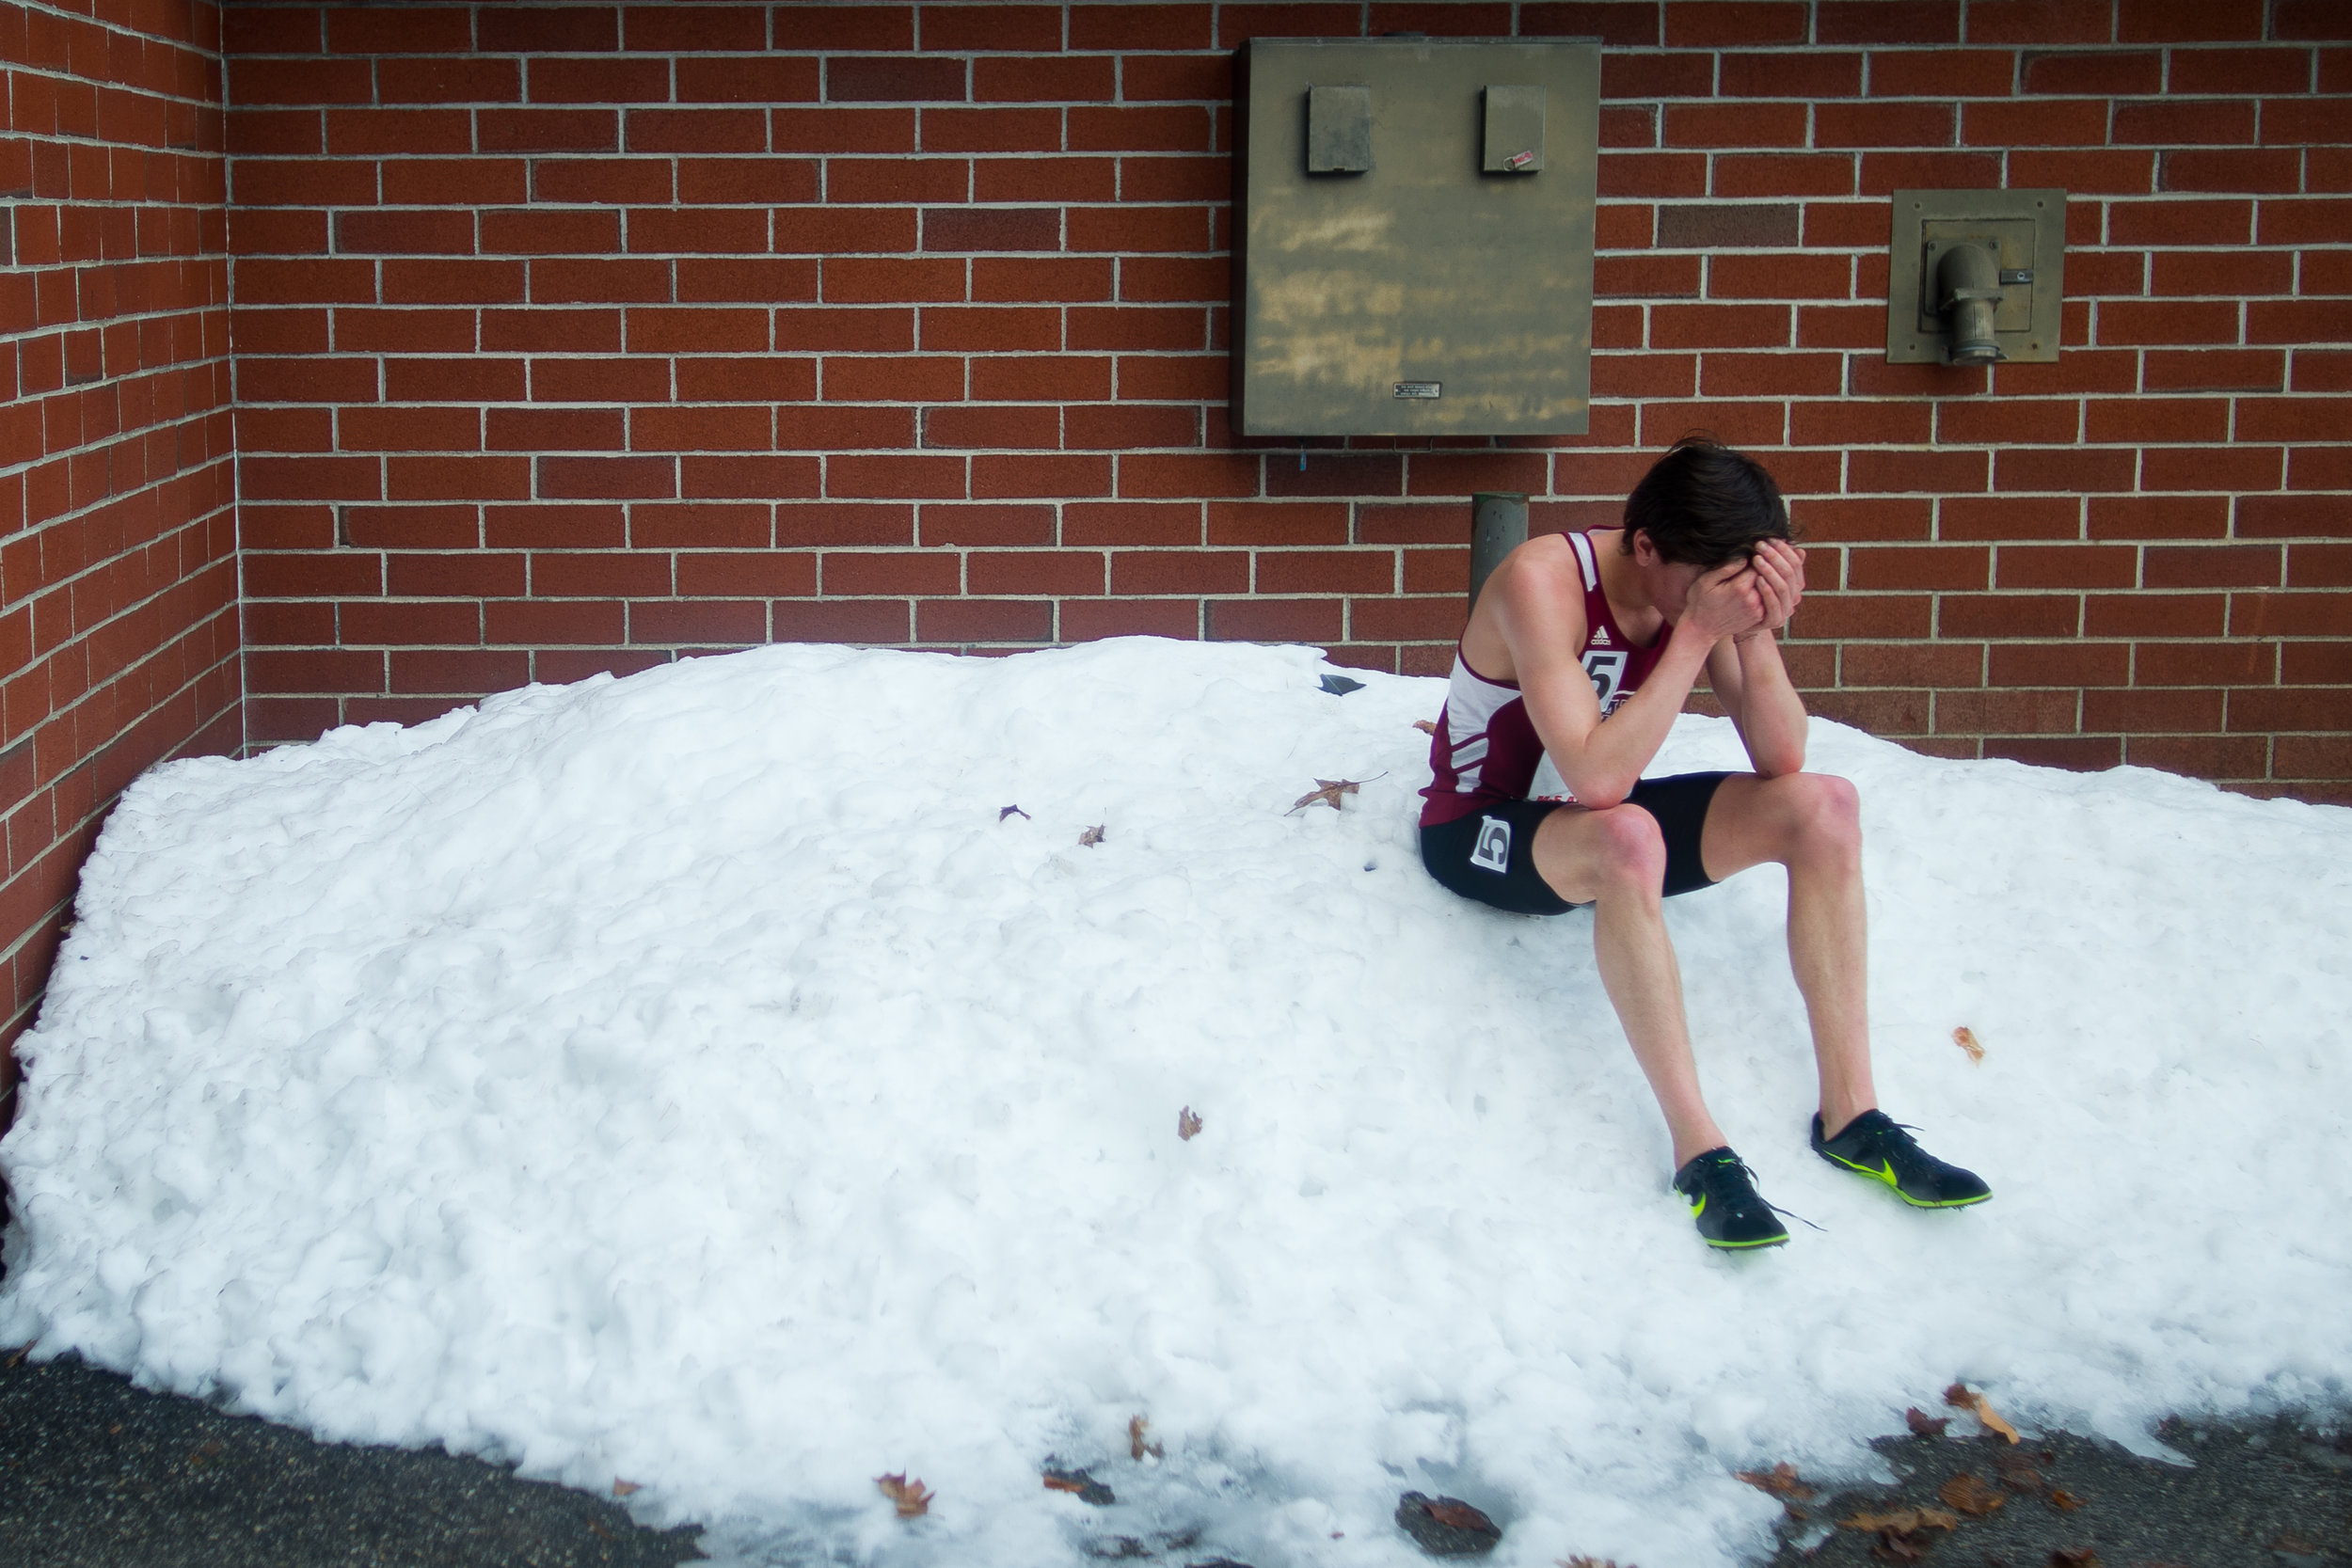 Tully Hannan of Bates College has a solitary moment after competing in the 5,000 meter run at the New England Division III track and field championship on February 16, 2013.